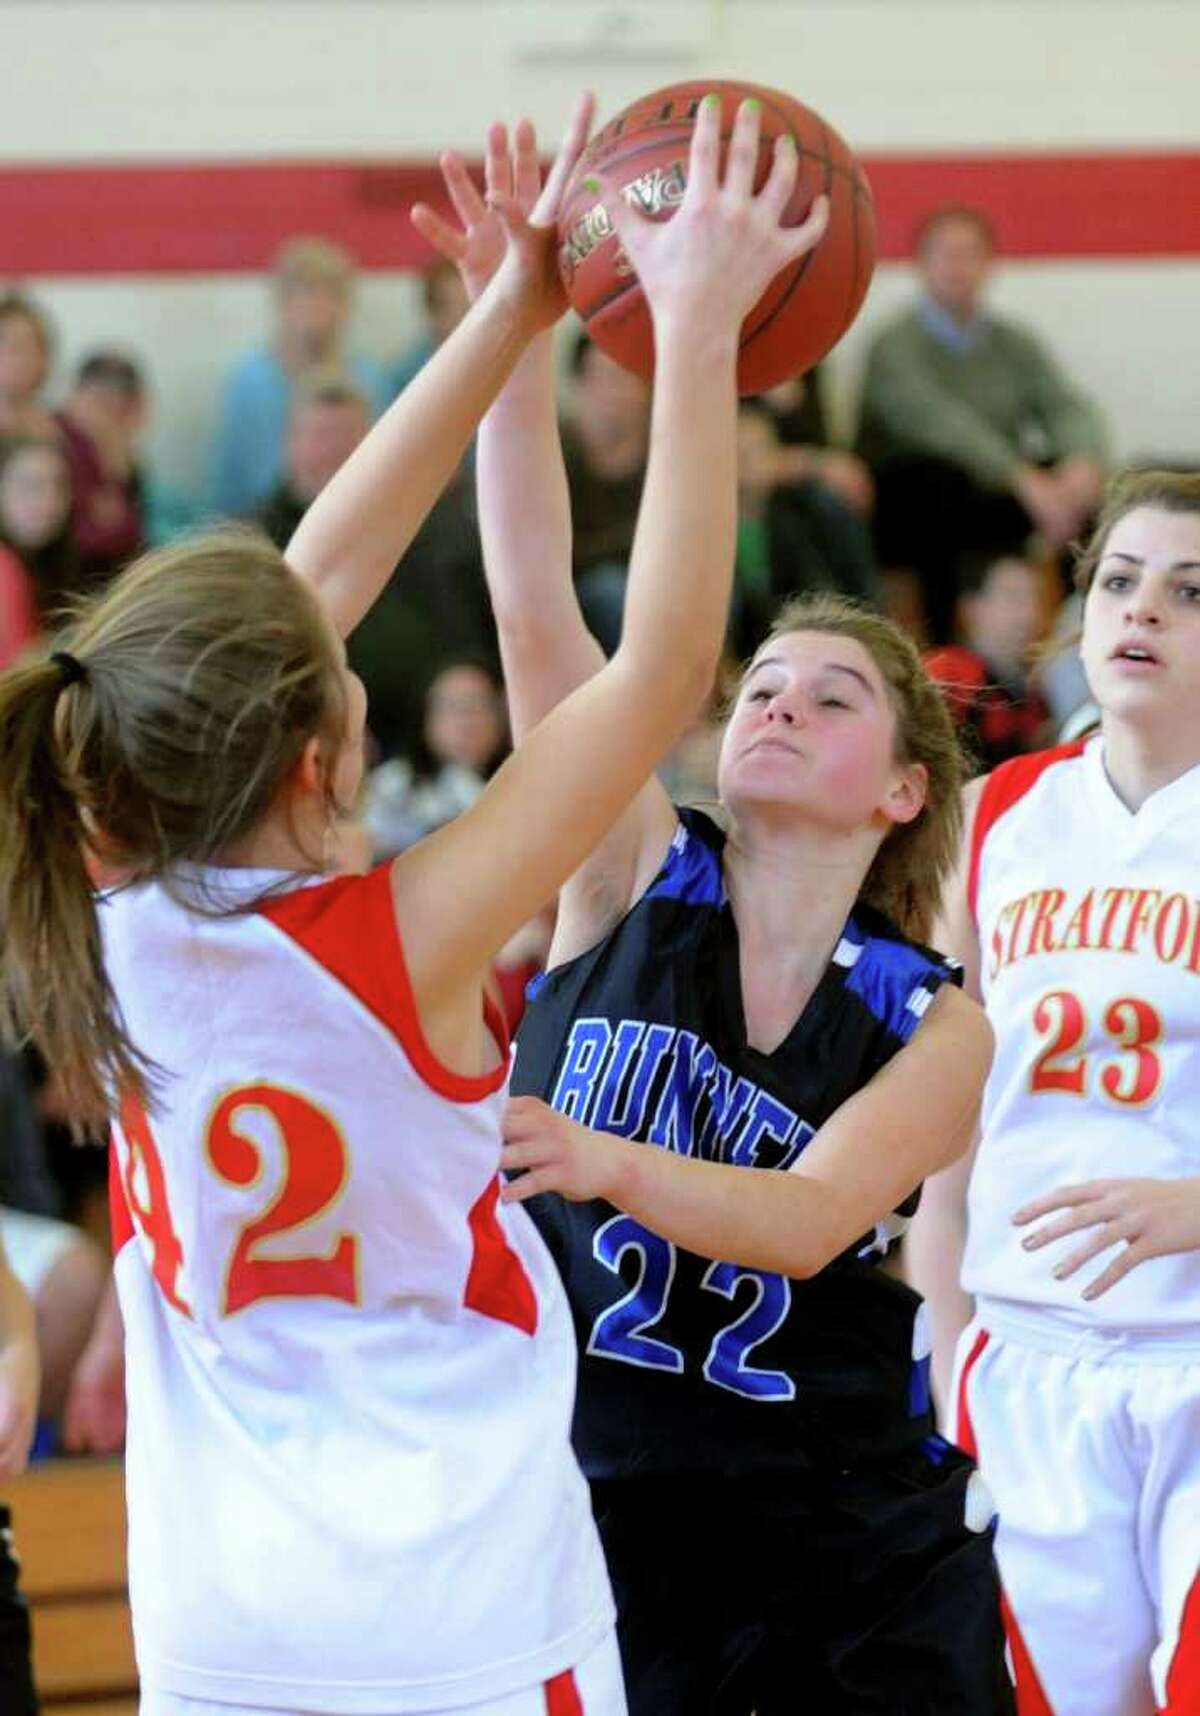 Bunnell's #22 Jessica Bogdwicz blocks a pass attempt by a Stratford player, during girls basketball action in Stratford, Conn. on Saturday January 14, 2012.